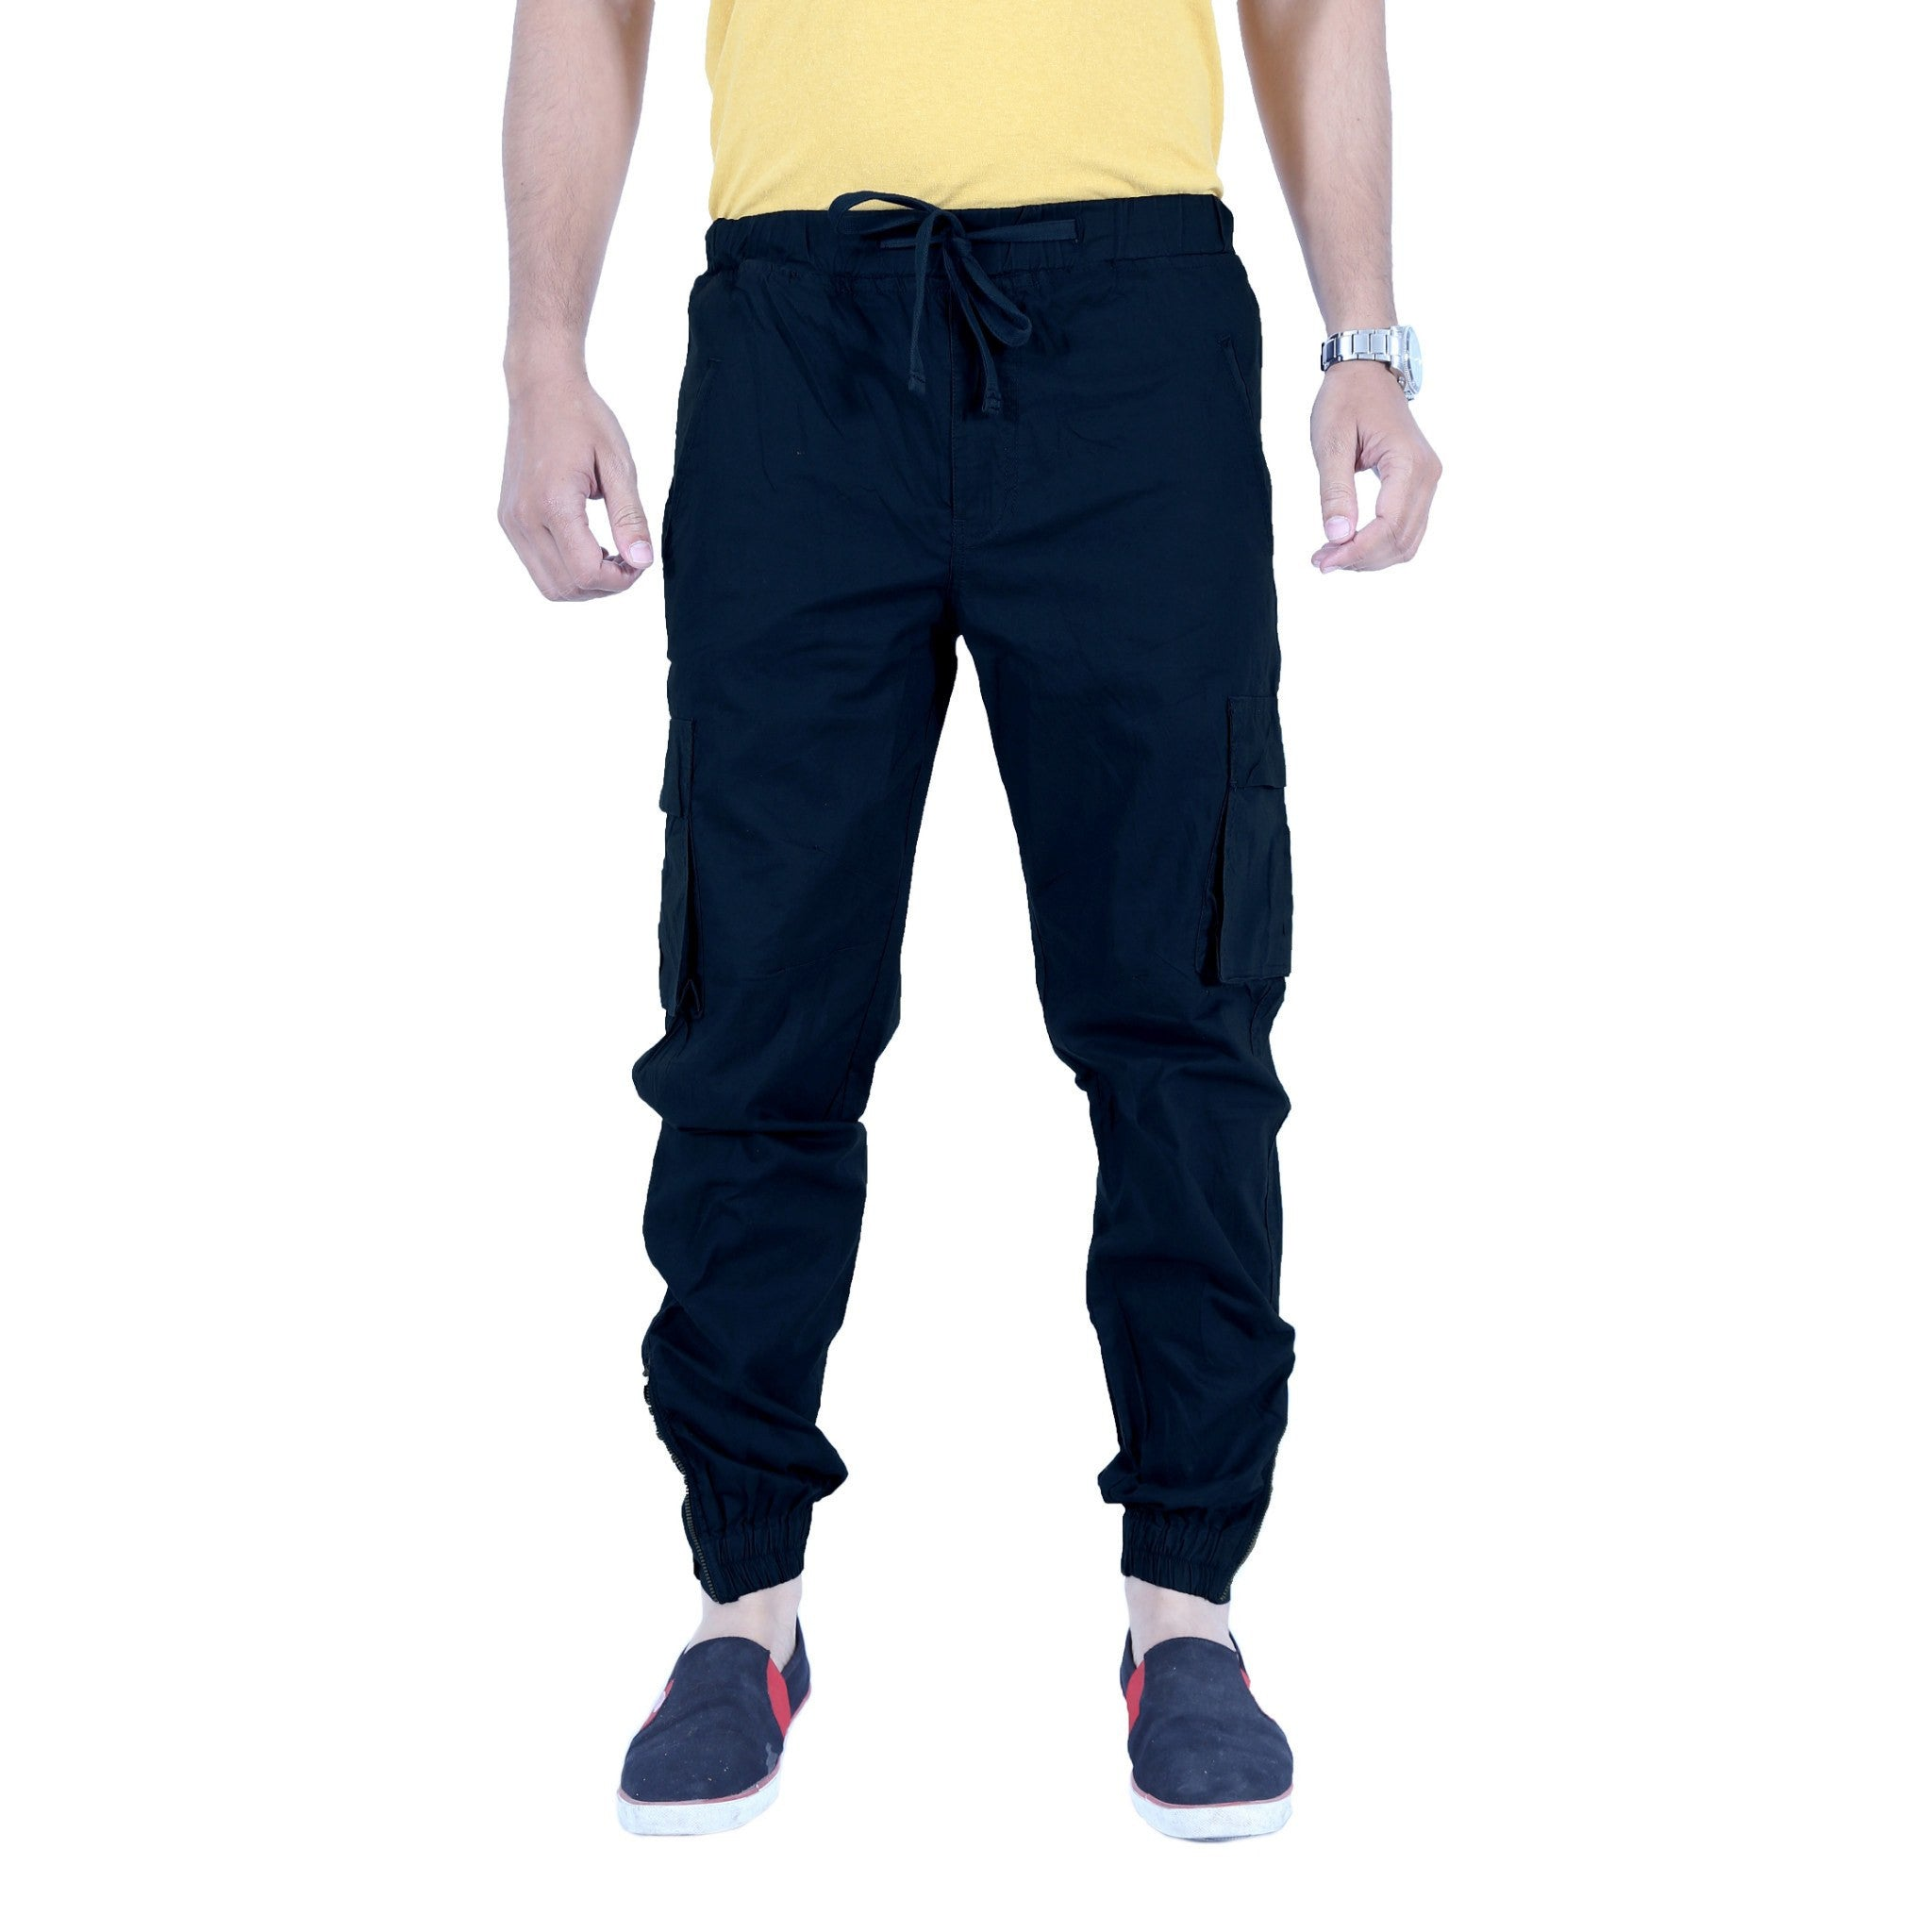 Uber Blacklue Cotton Trouser front view